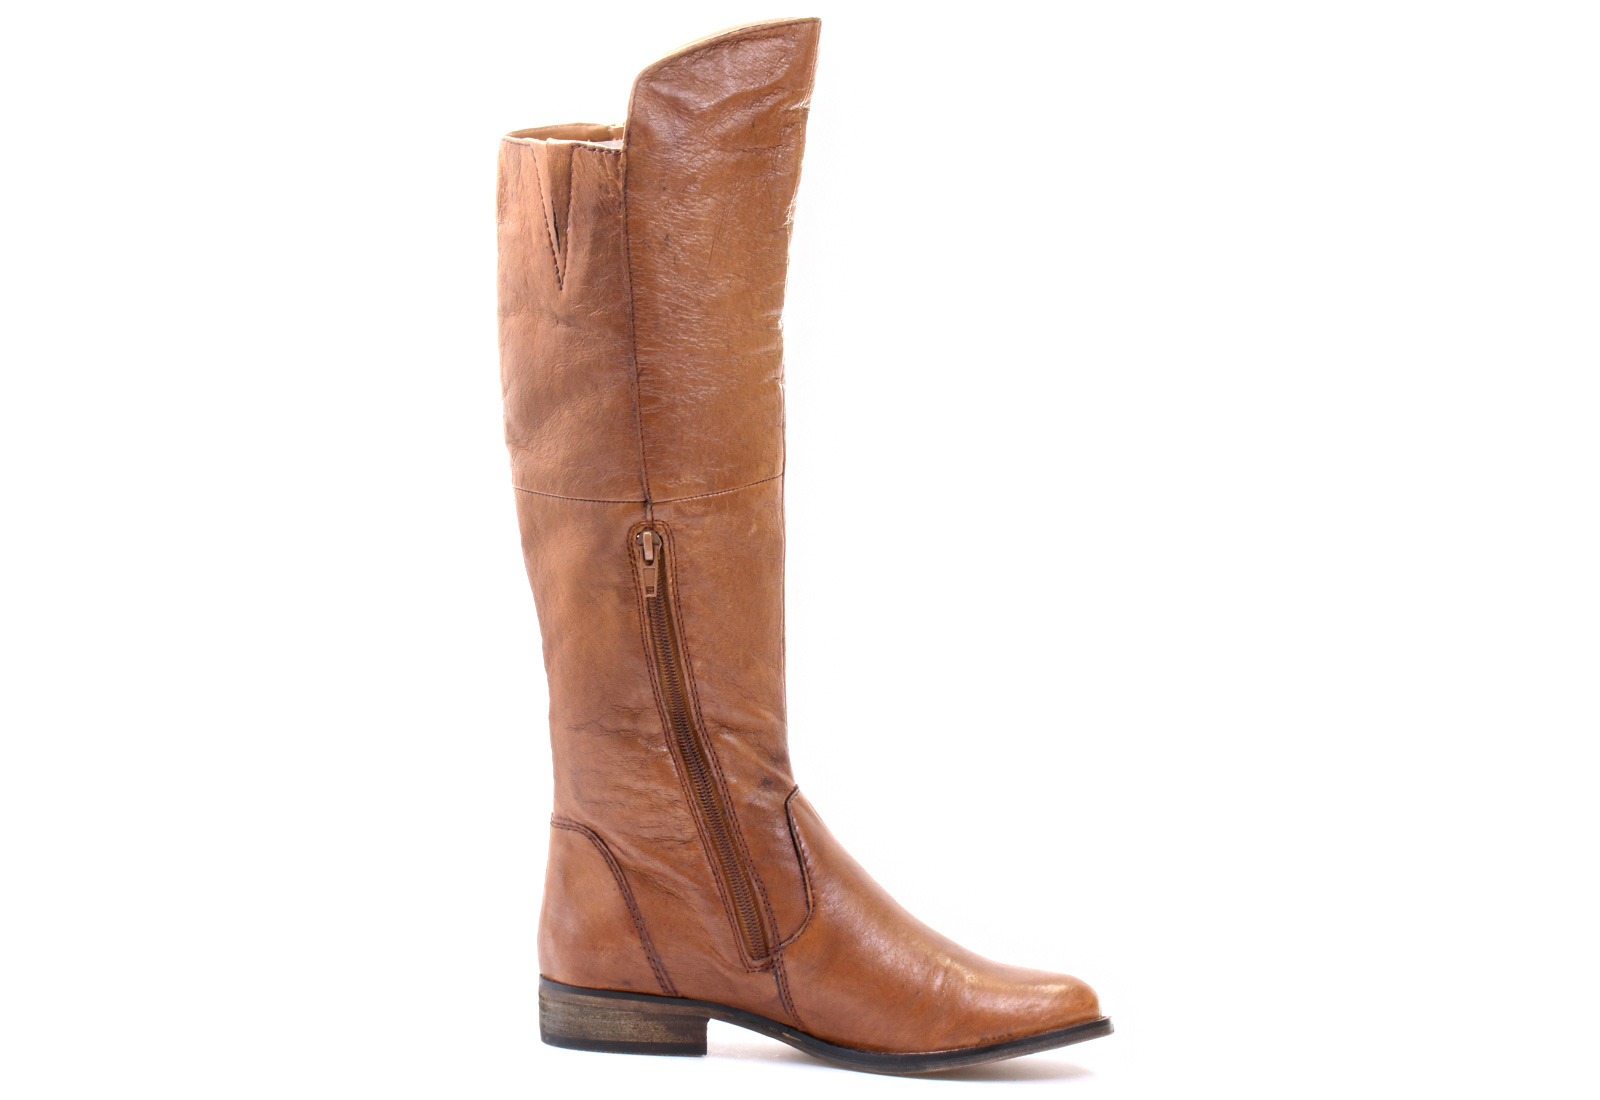 be87dad7647 Steve Madden Boots - Shawny - SHAWNY-247 - Online shop for sneakers, shoes  and boots